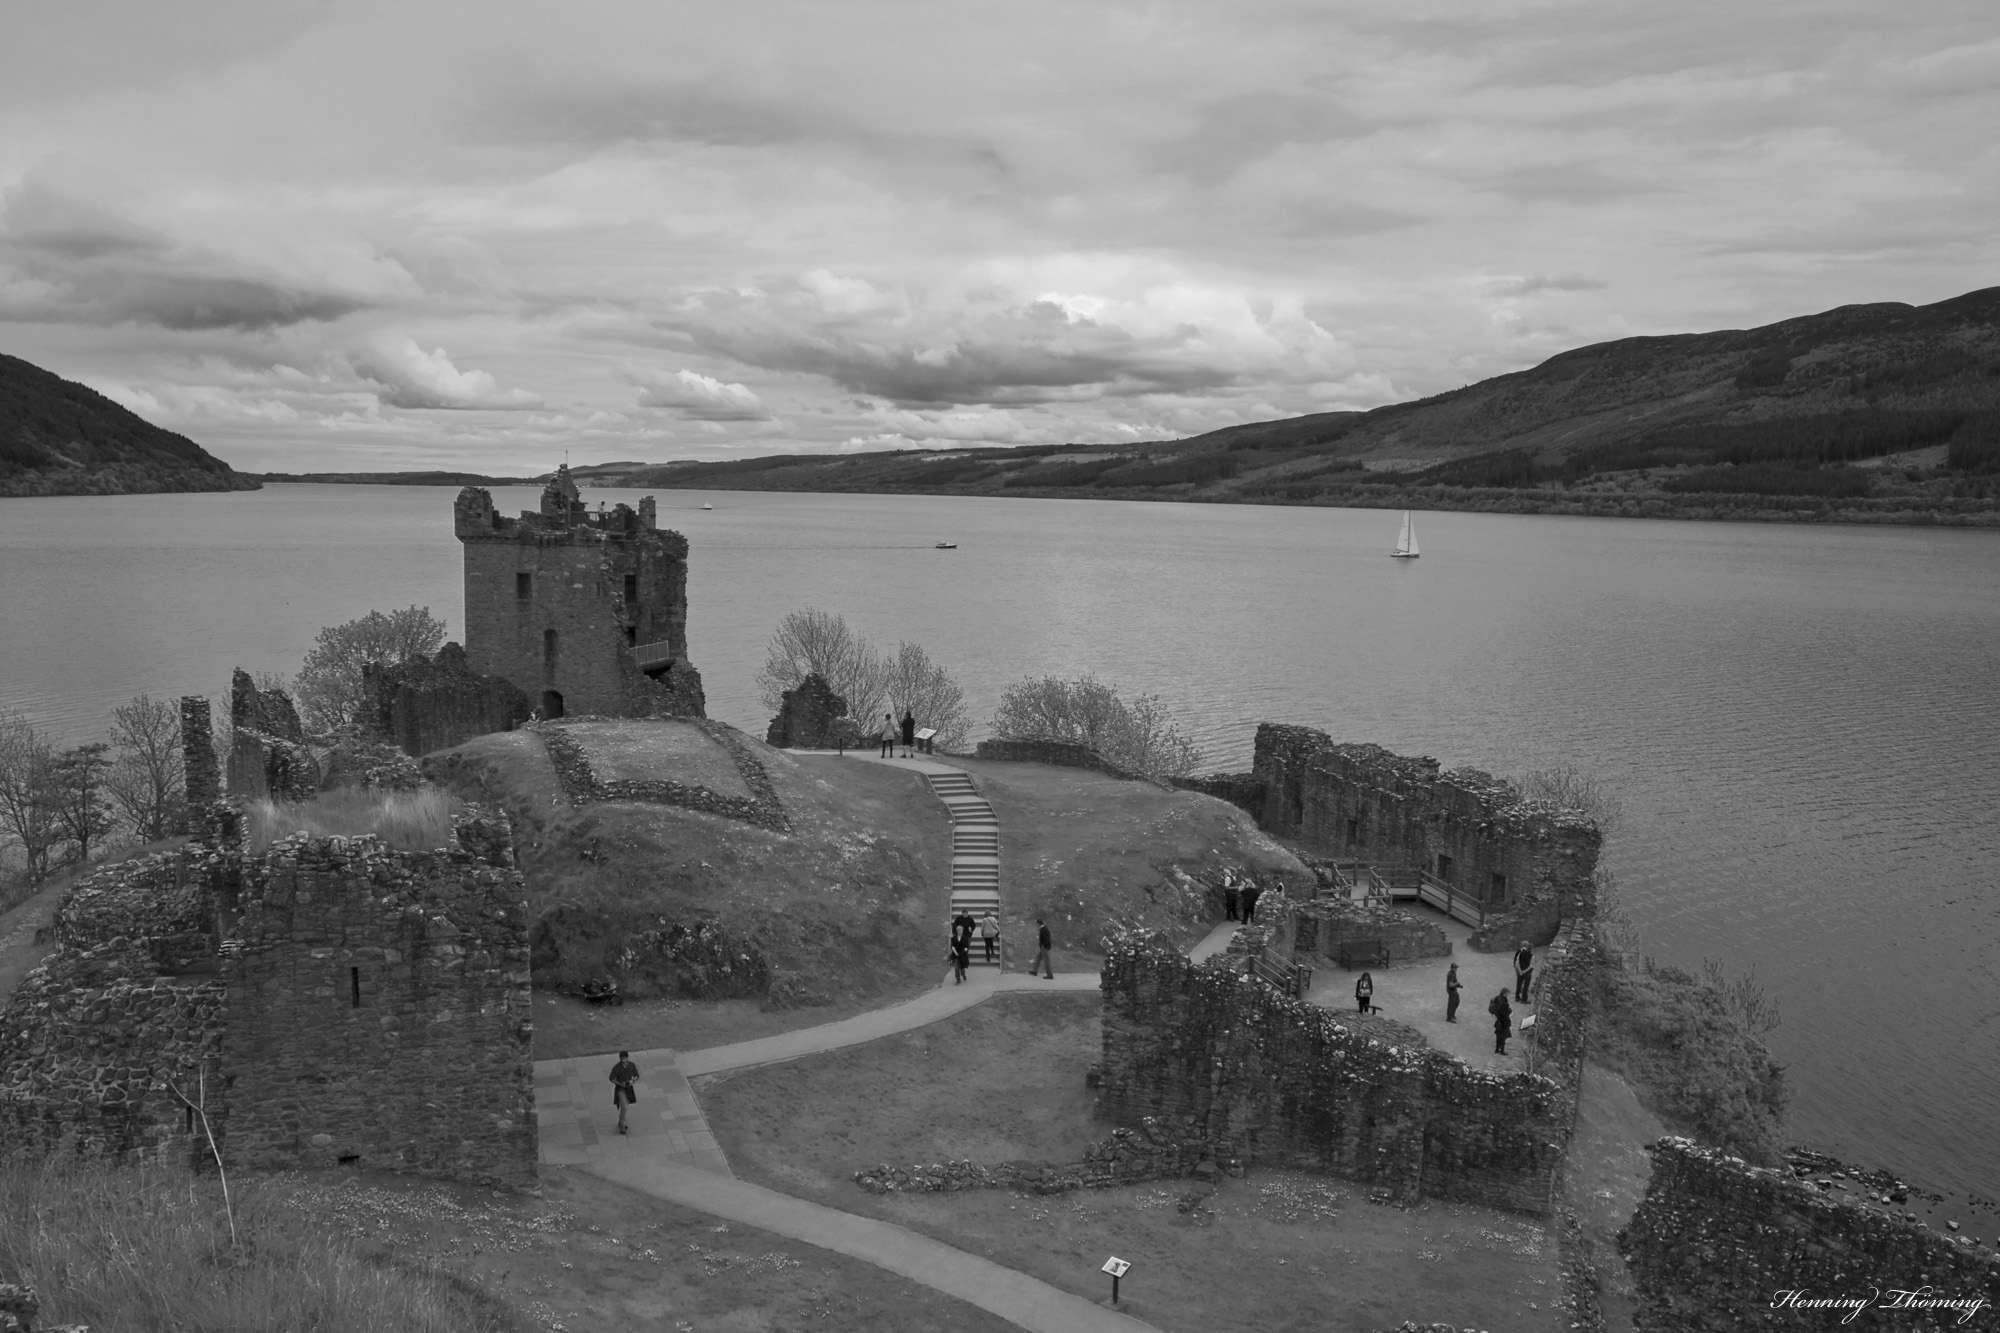 the remains of Urquhart Castle